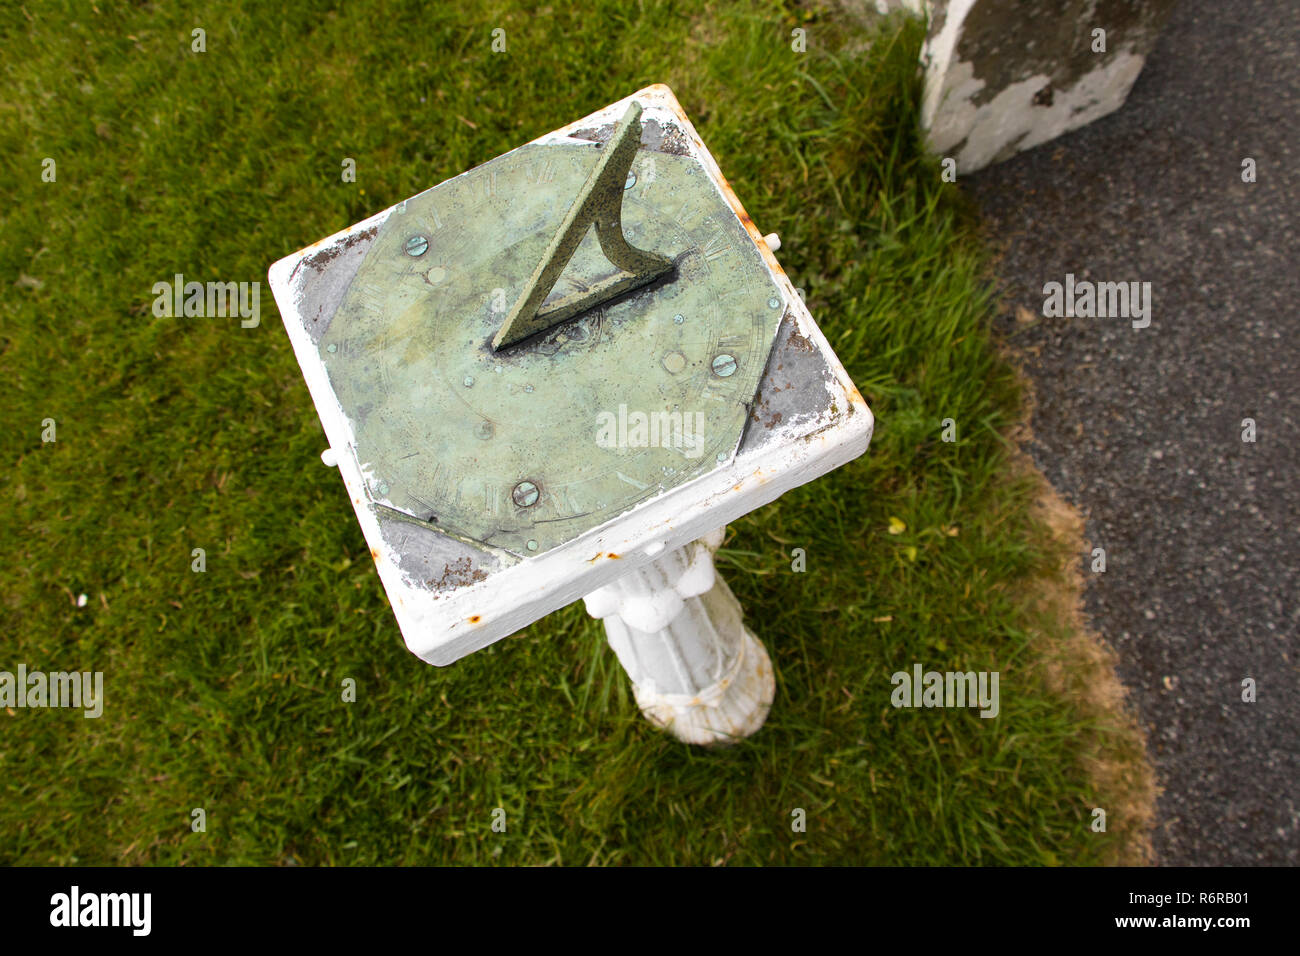 Copper horizontal Sun dial with inclined edge on pedestal in garden - Stock Image